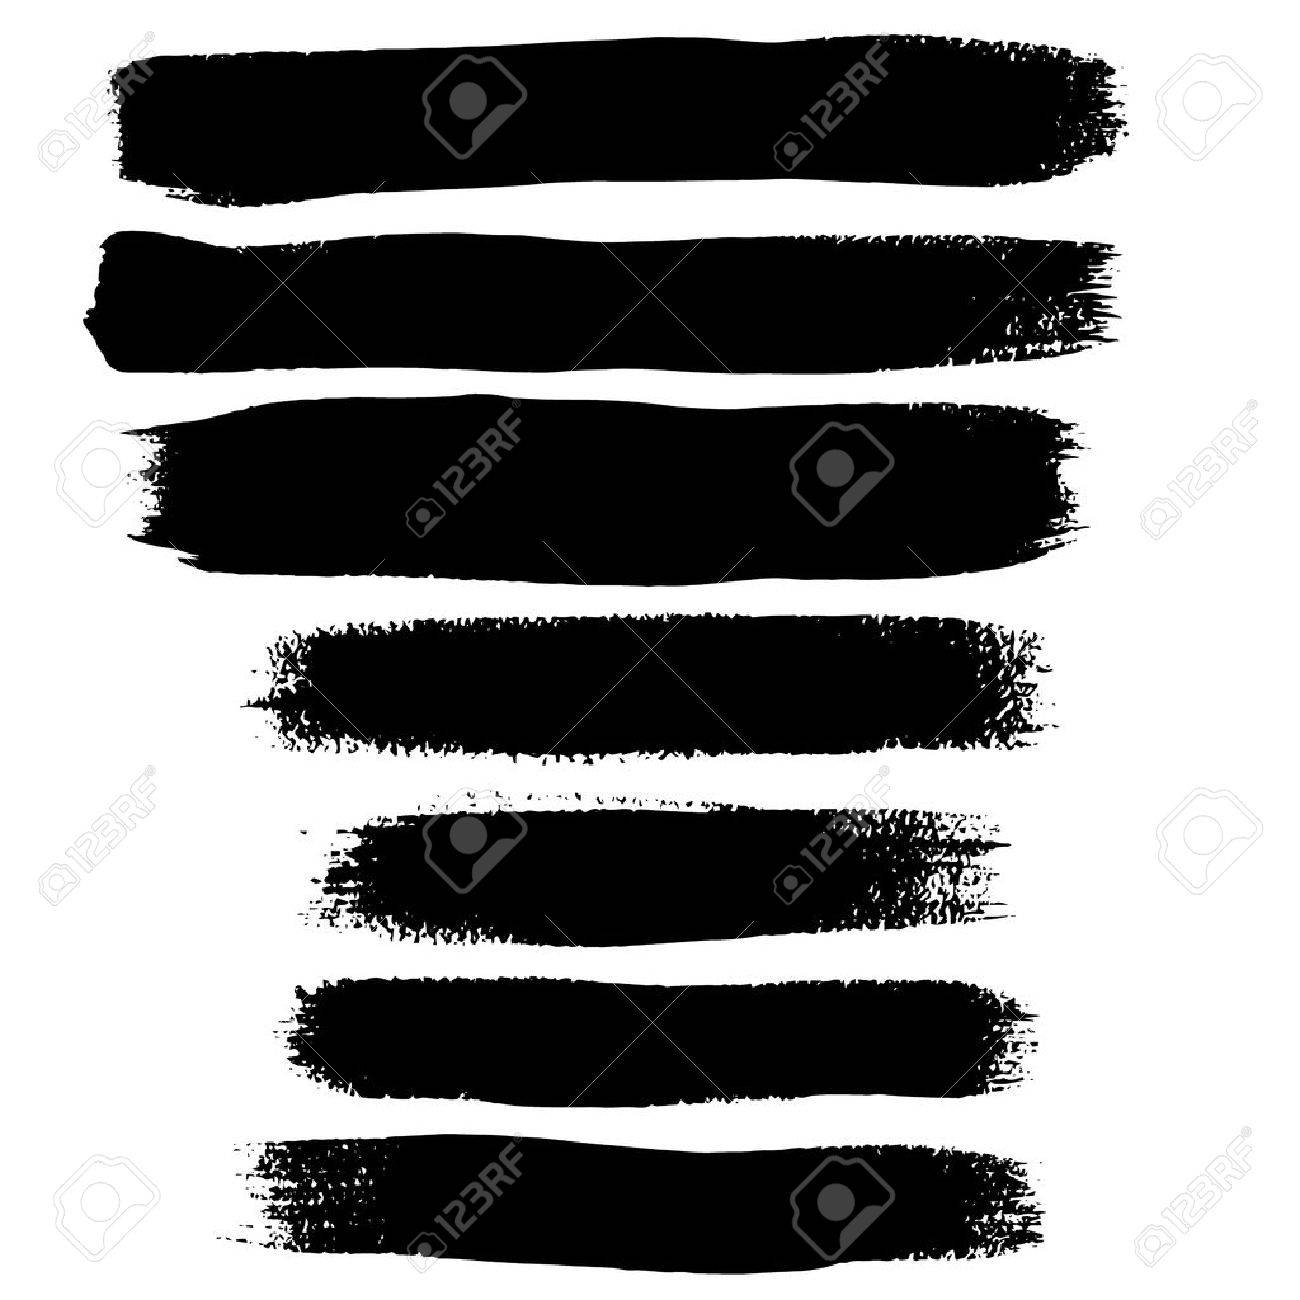 black ink brush strokes royalty free cliparts vectors and stock rh 123rf com watercolor brush strokes clipart Brushstroke Dove Clip Art